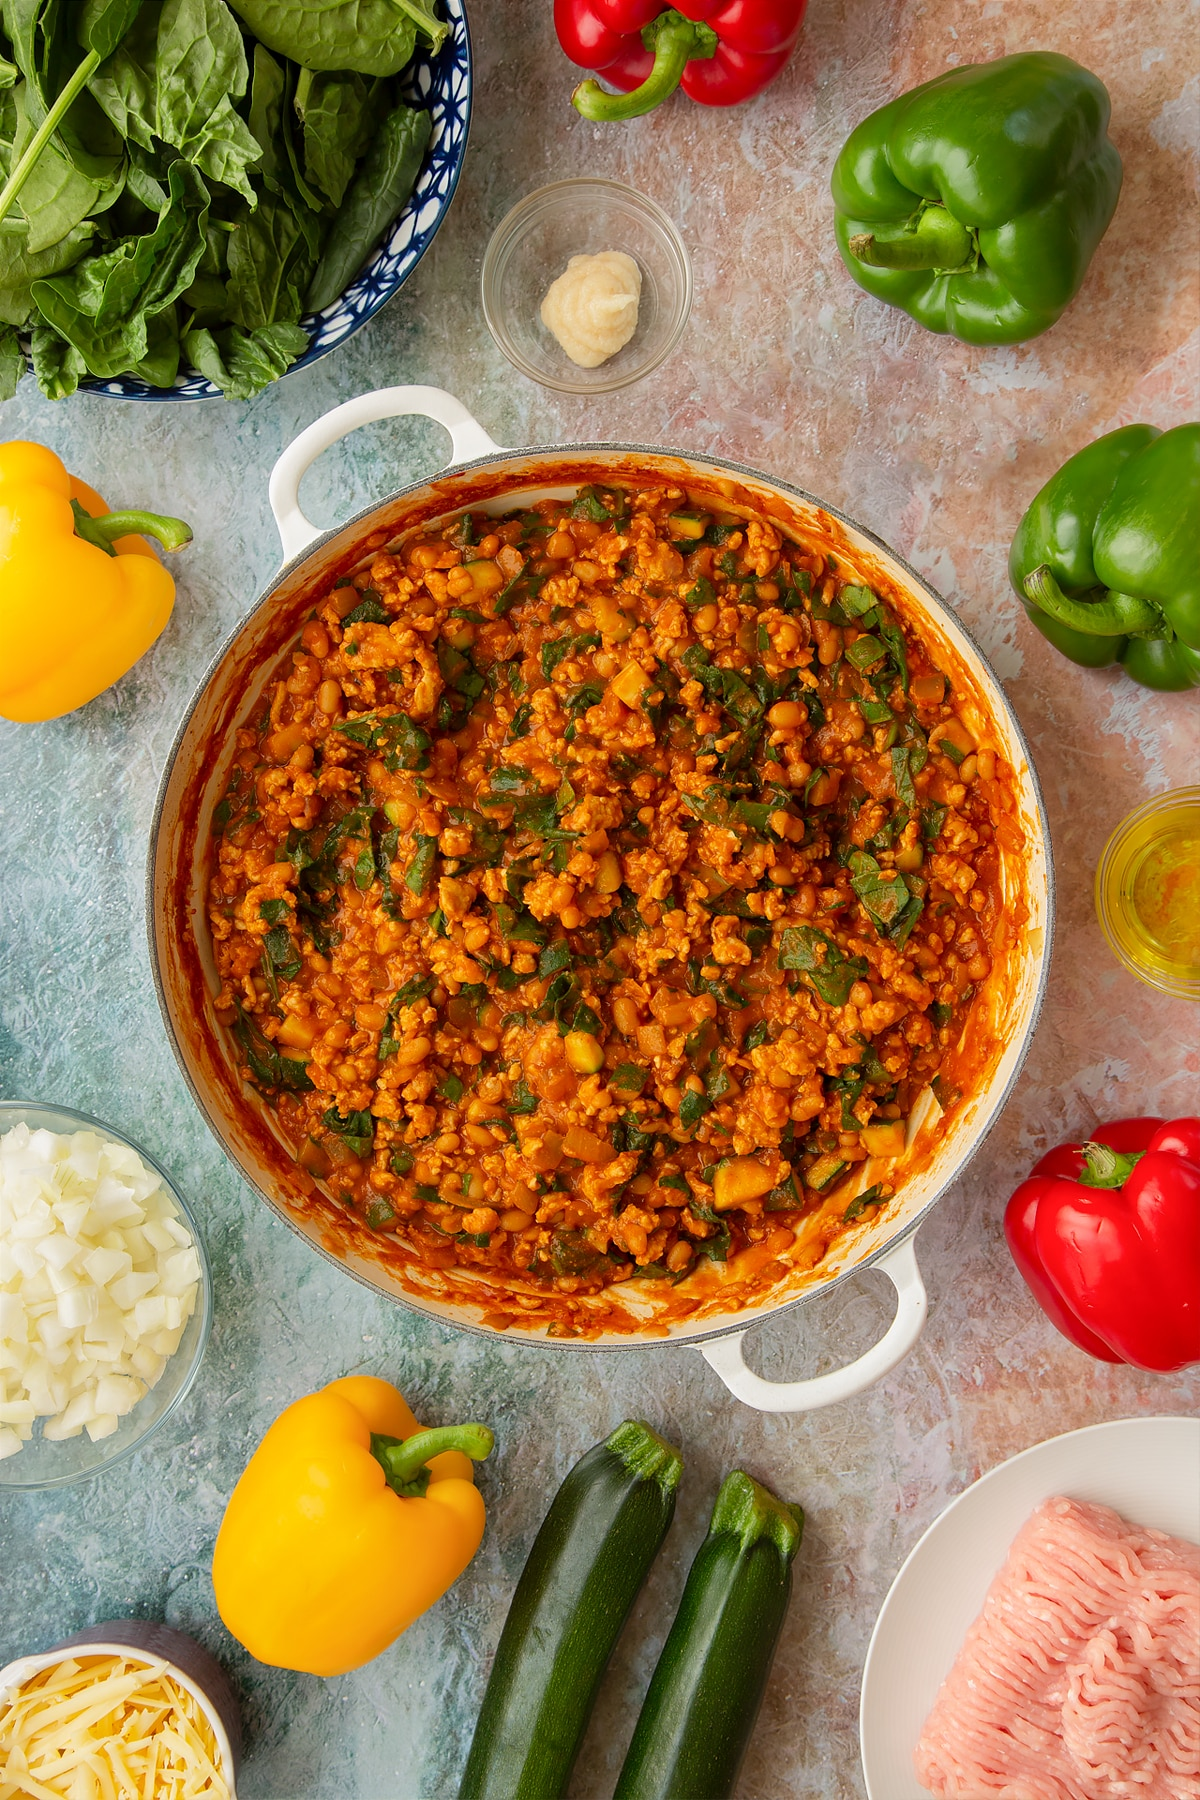 Vegetables, turkey mince, baked beans and wilted spinach in a spicy tomato sauce in a large shallow pan. Ingredients to make baked bean stuffed peppers surround the pan.